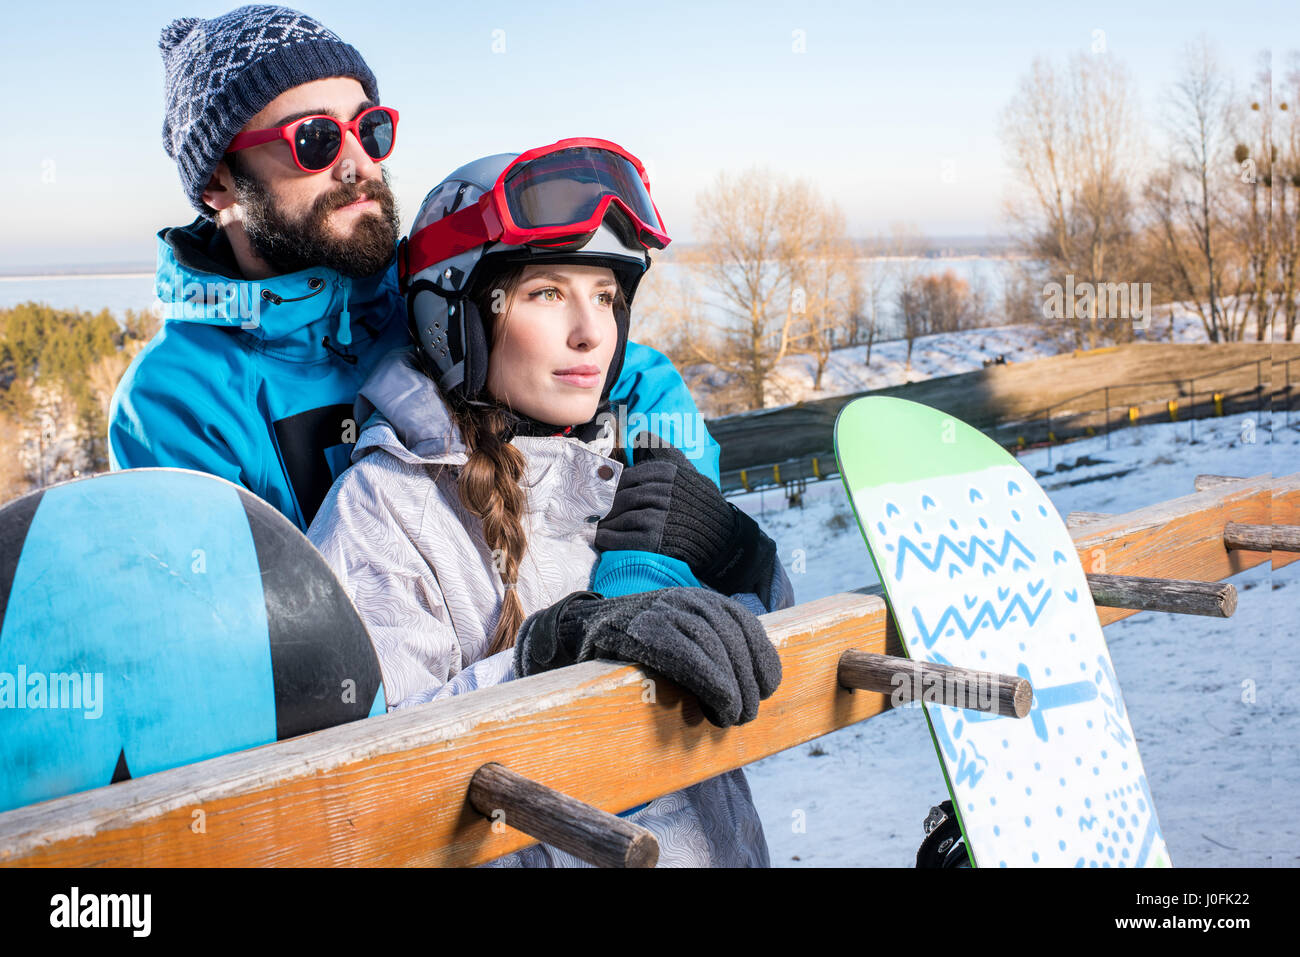 Young male and female snowboarders embracing and looking at distance - Stock Image